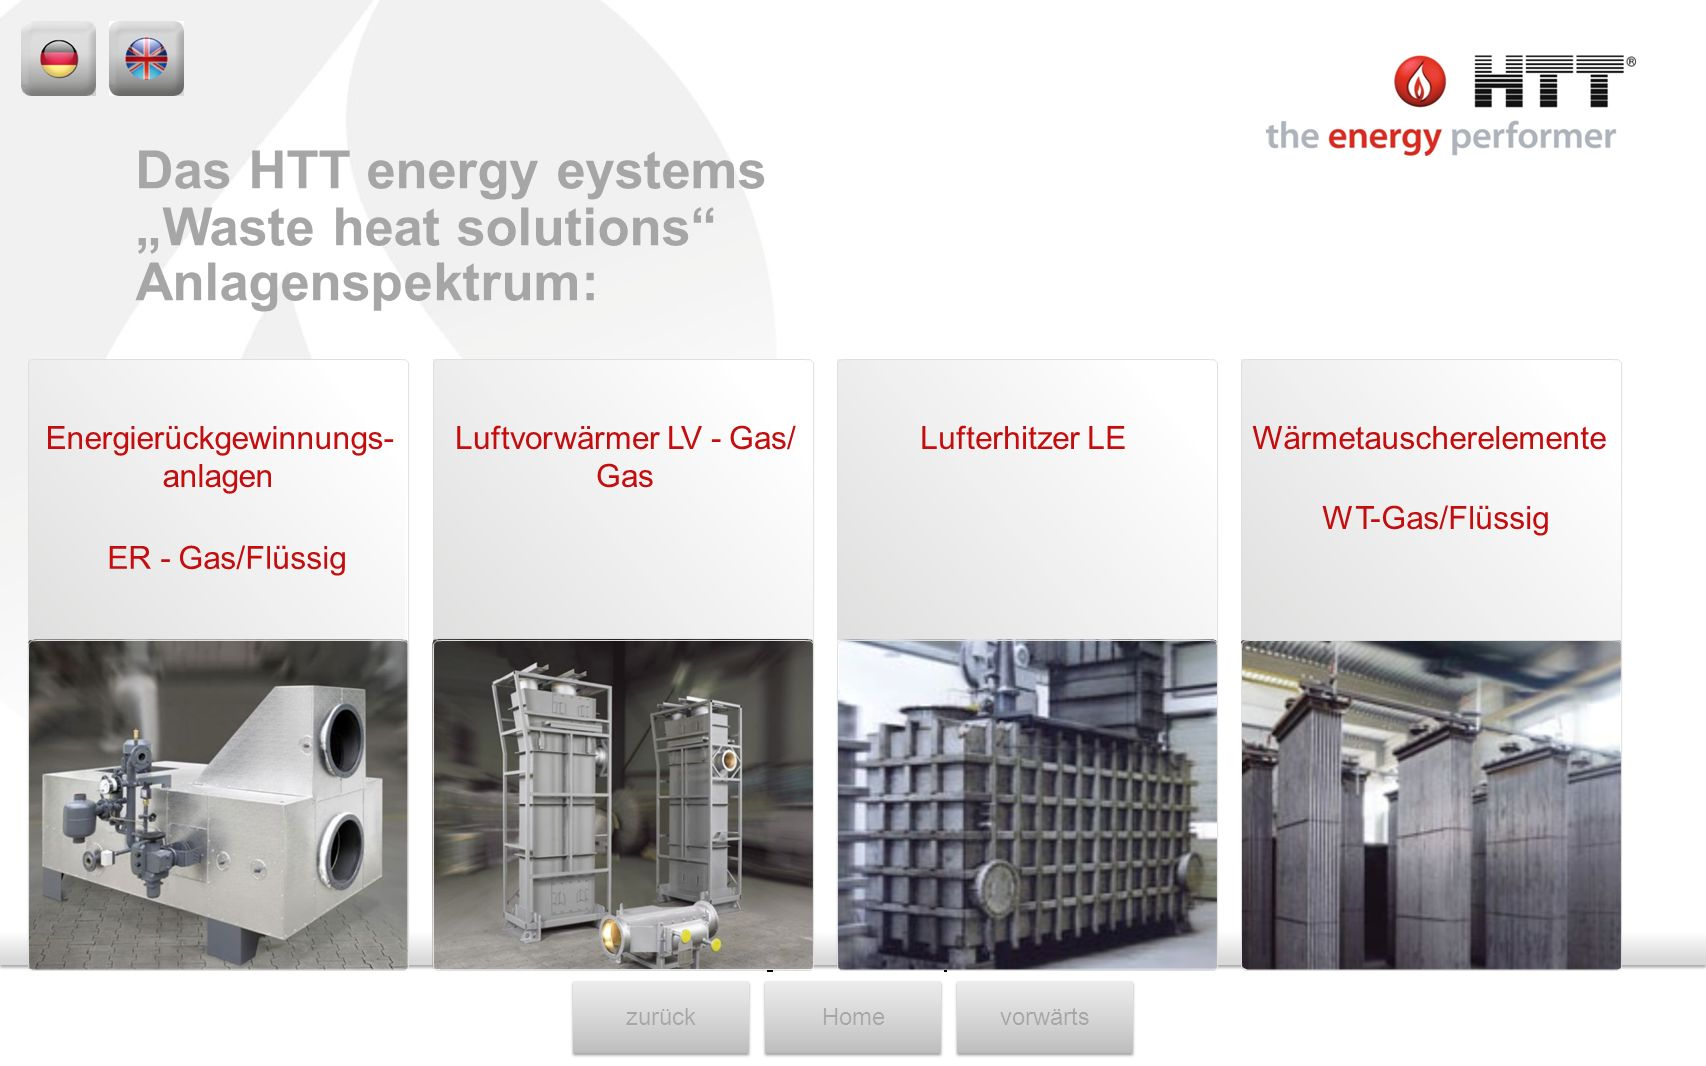 """Waste heat solutions Anlagenspektrum:"